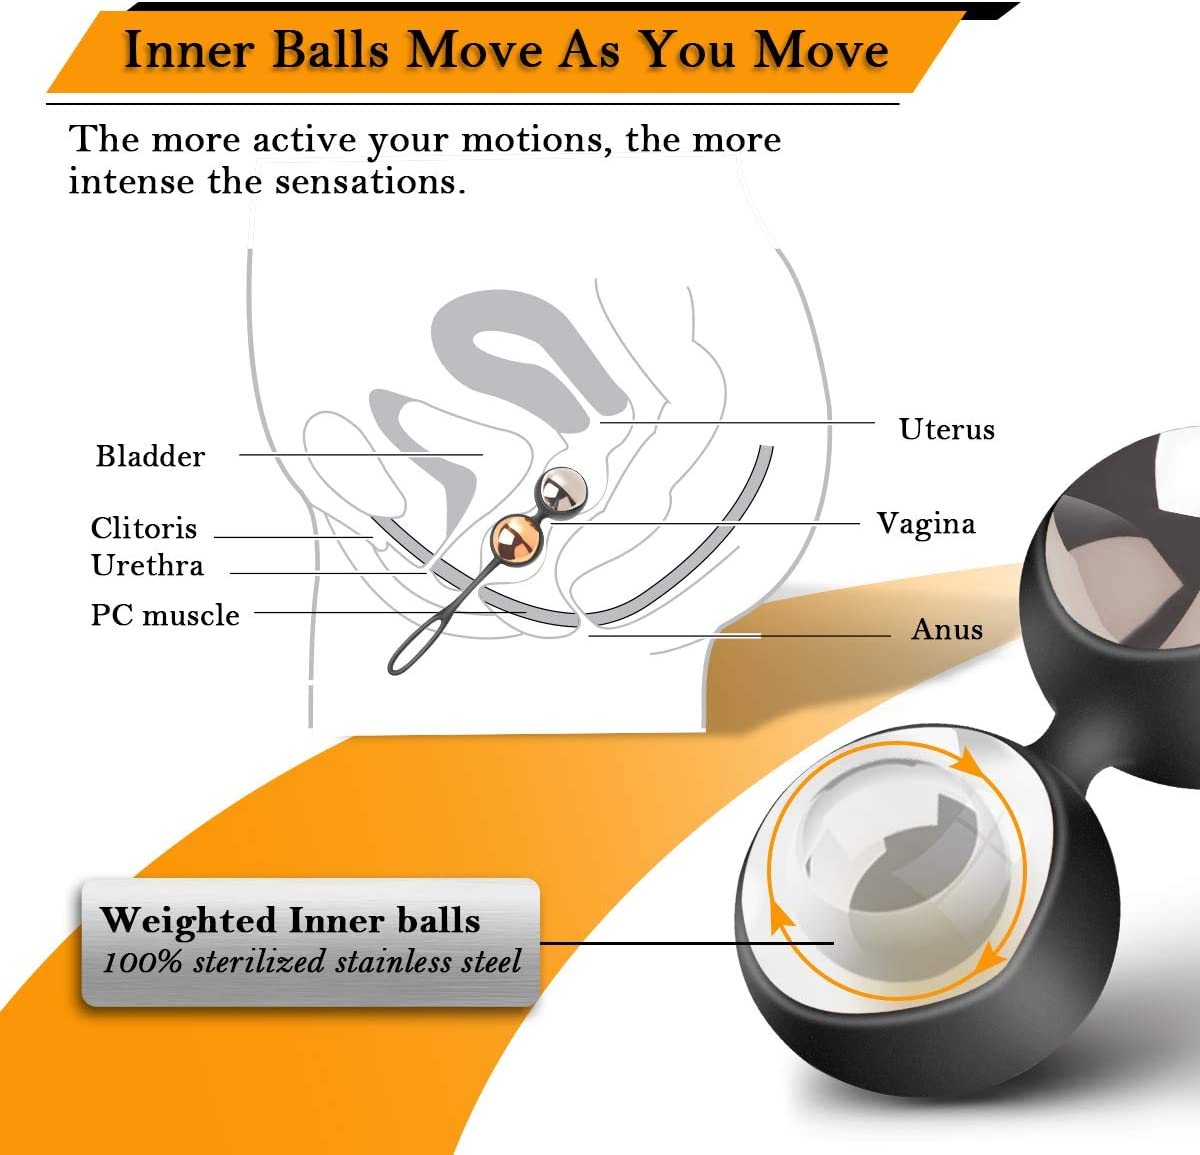 Kegel Balls Exercise Weights, Ben Wa Balls Kit for Women Bladder Control: Health & Personal Care